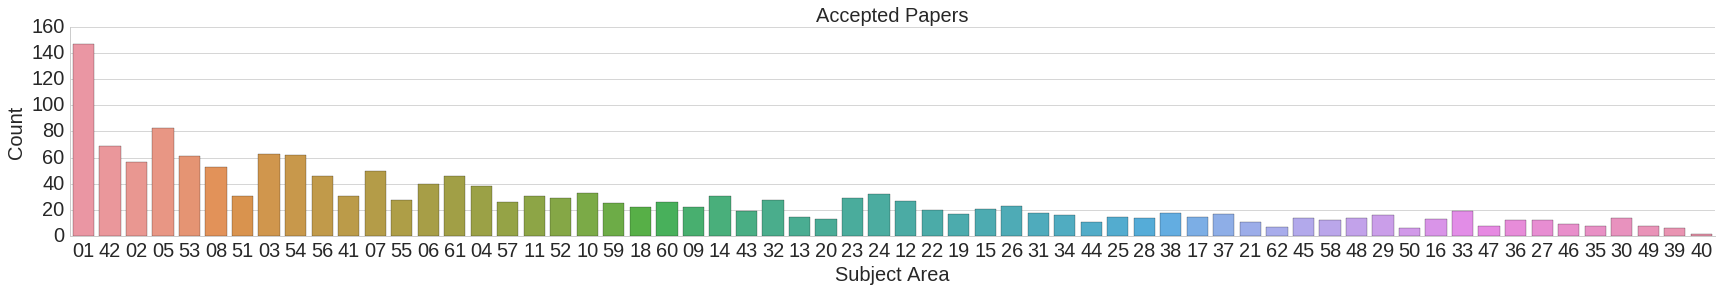 subject areas accepted papers